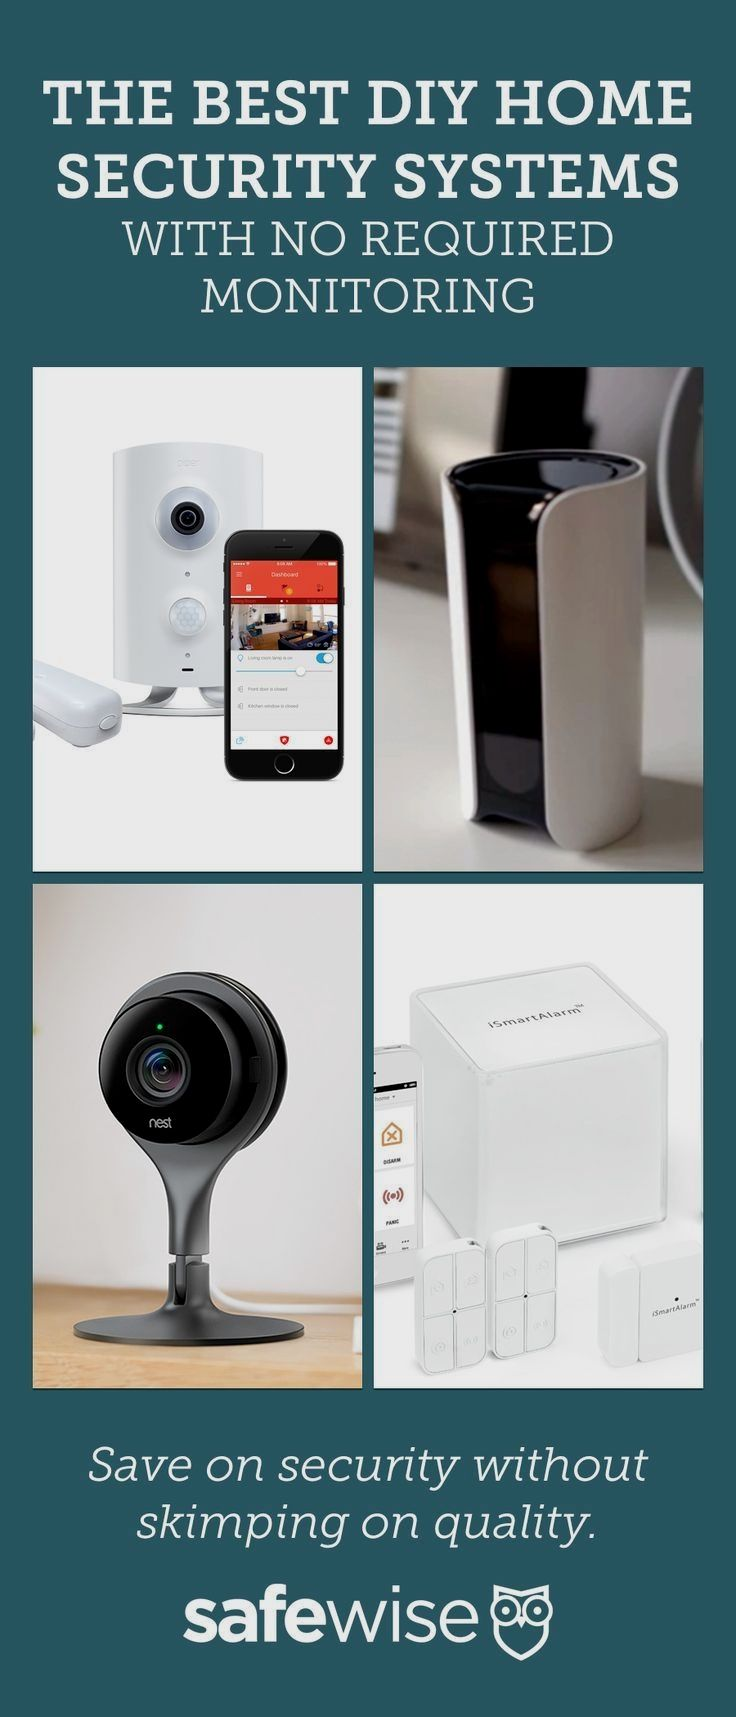 Onesmartshelter Home Follow For Best Ideas For Home Automation Products Cool Technology Projec Diy Home Security Home Security Tips Home Security Systems